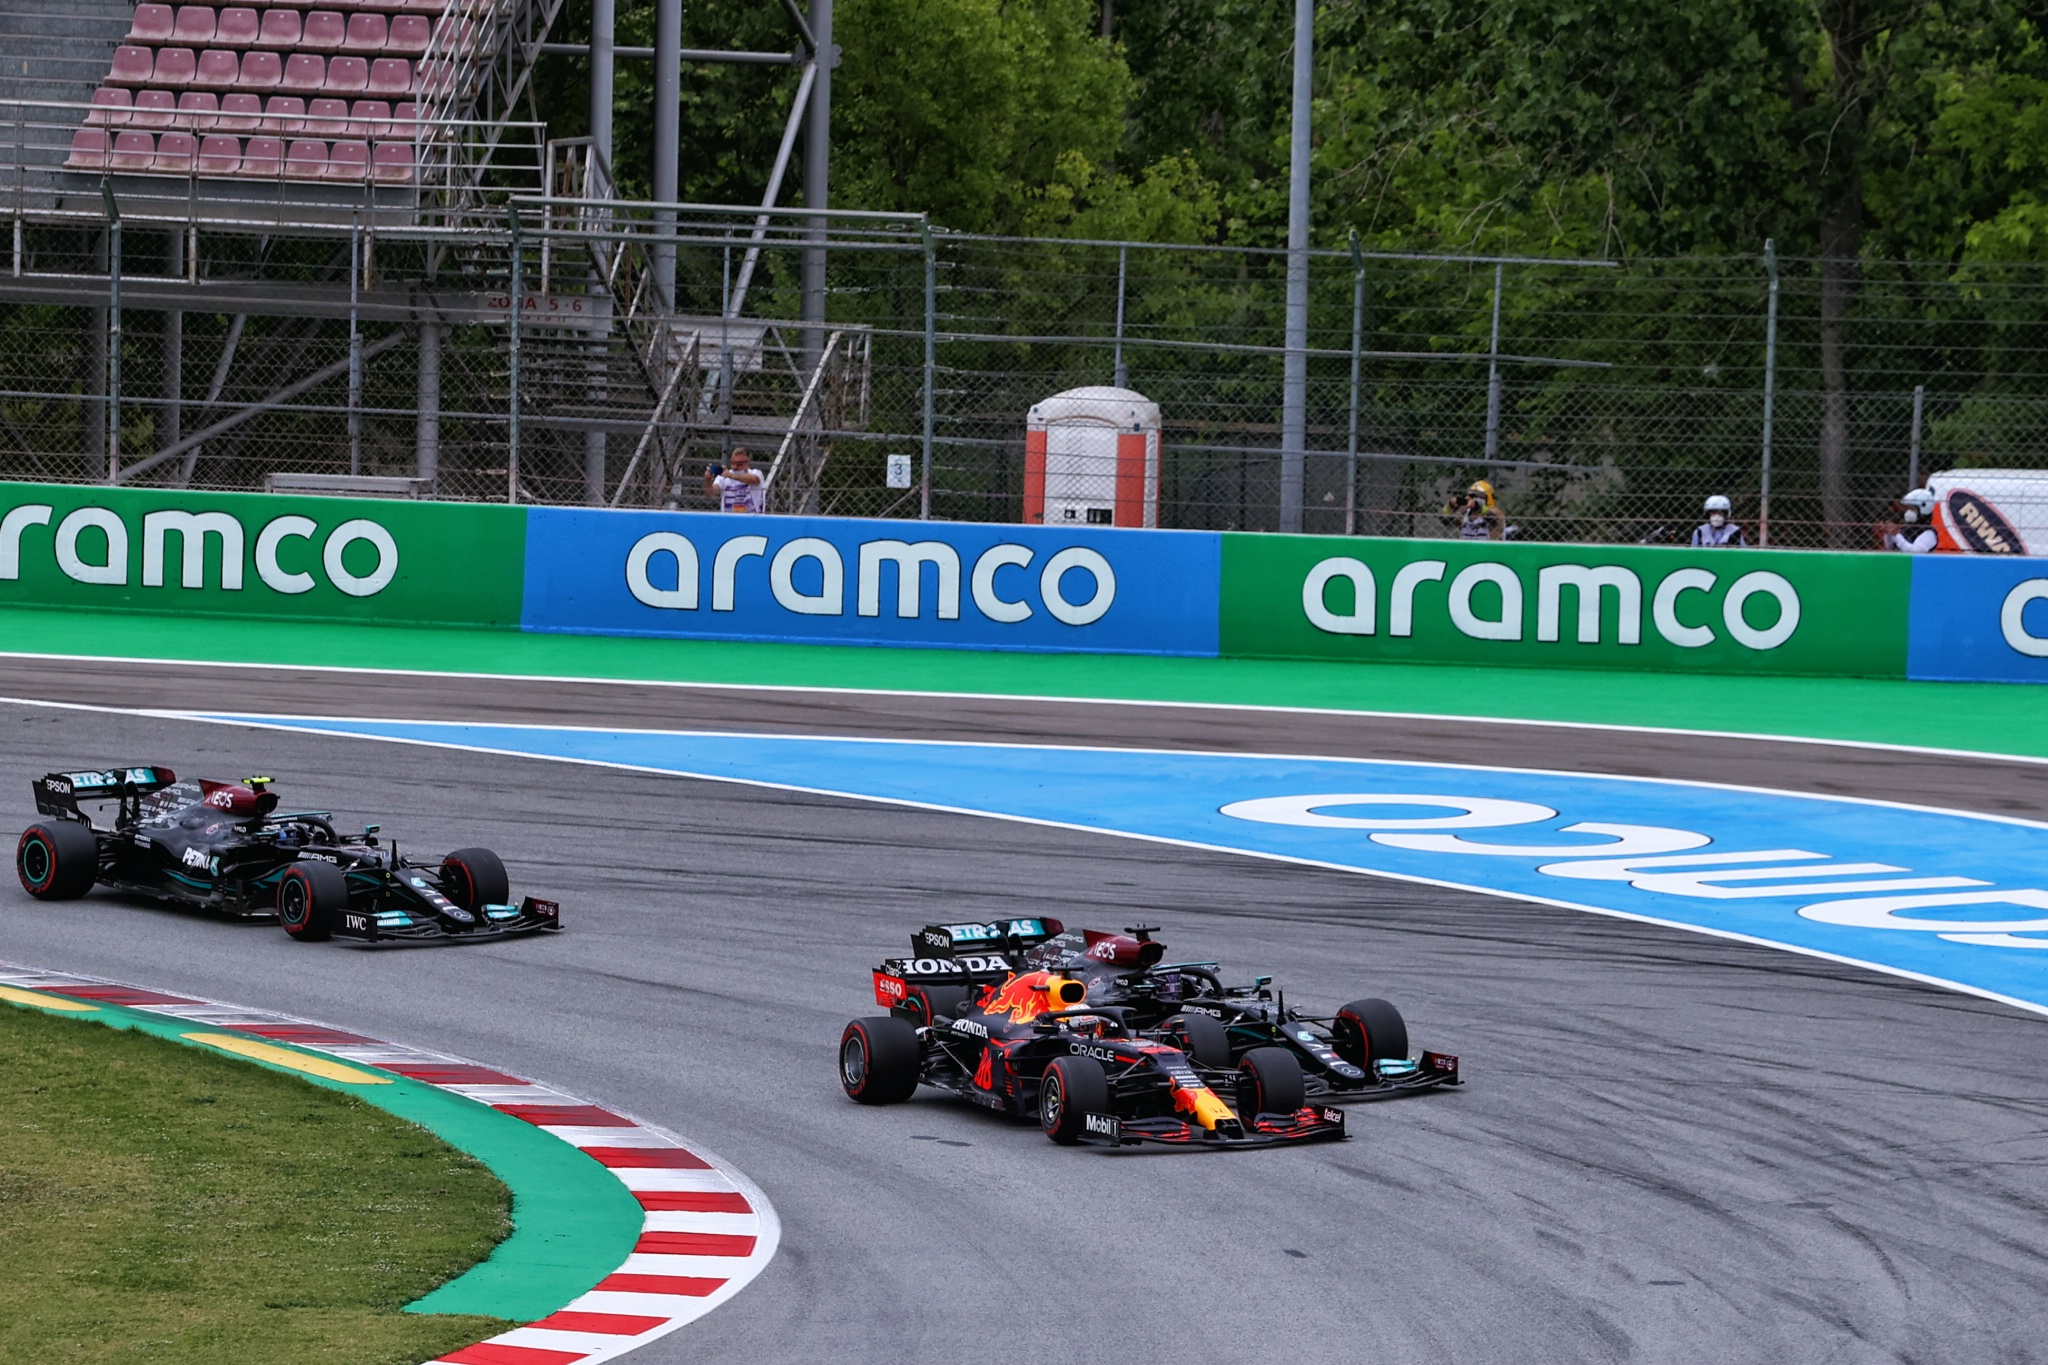 Max Verstappen (NLD) Red Bull Racing RB16B passes Lewis Hamilton (GBR) Mercedes AMG F1 W12 at the start of the race.